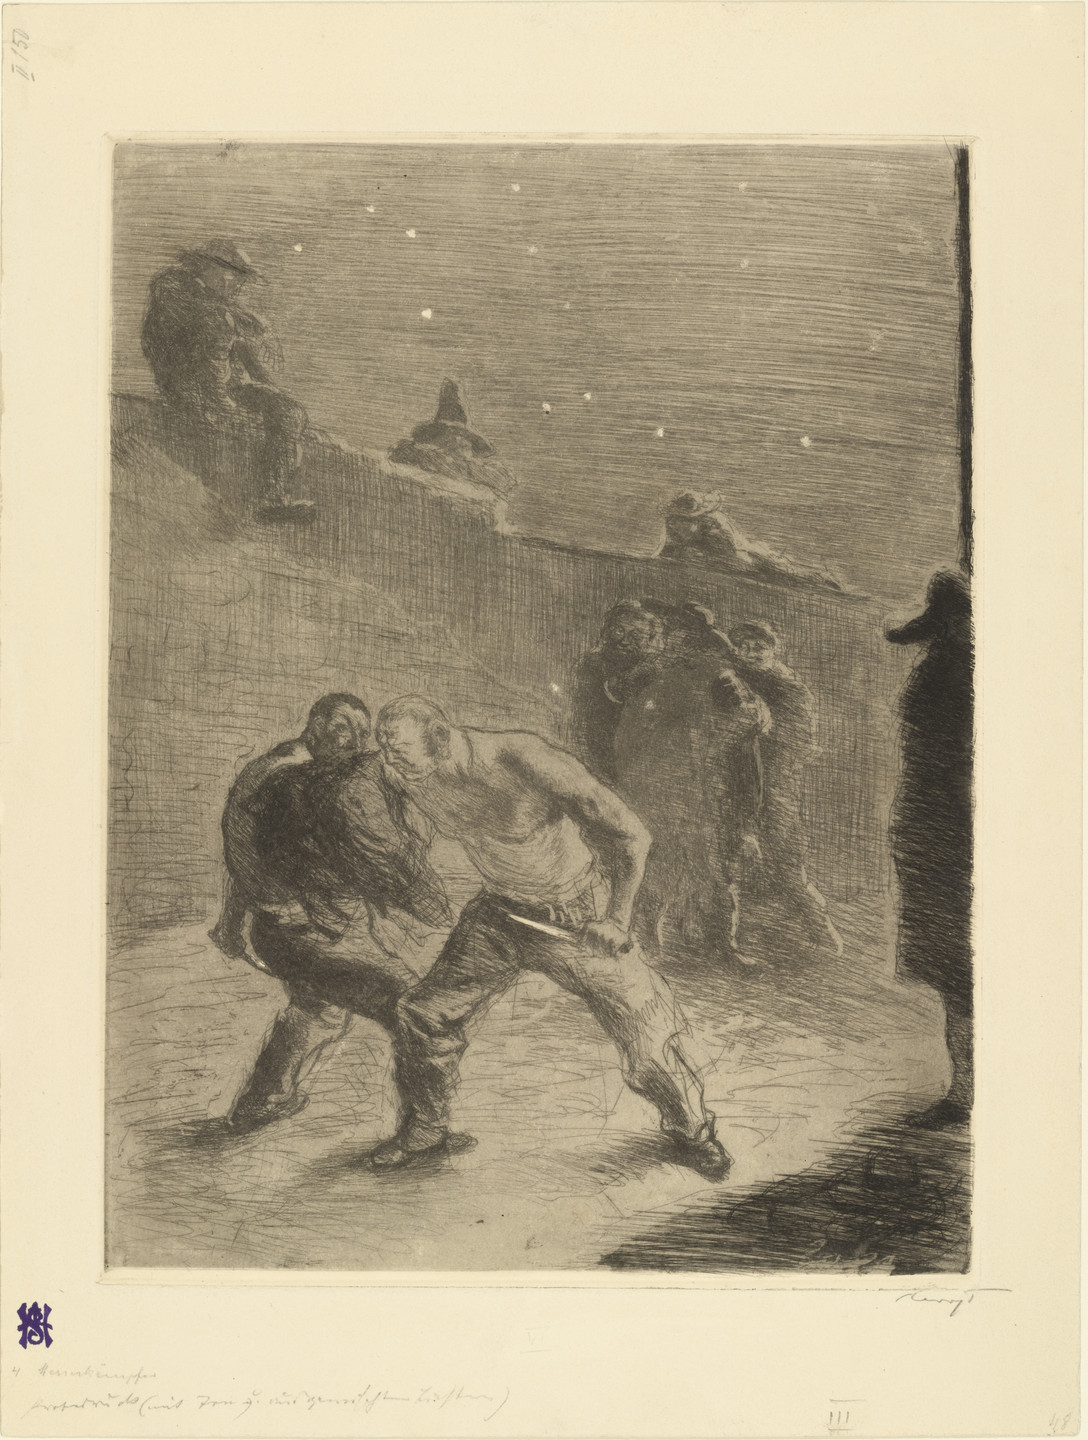 Max Slevogt. Duel (Zweikampf) (plate 5) for the portfolio Black Scenes (Schwarze Szenen). 1904 (published 1905)